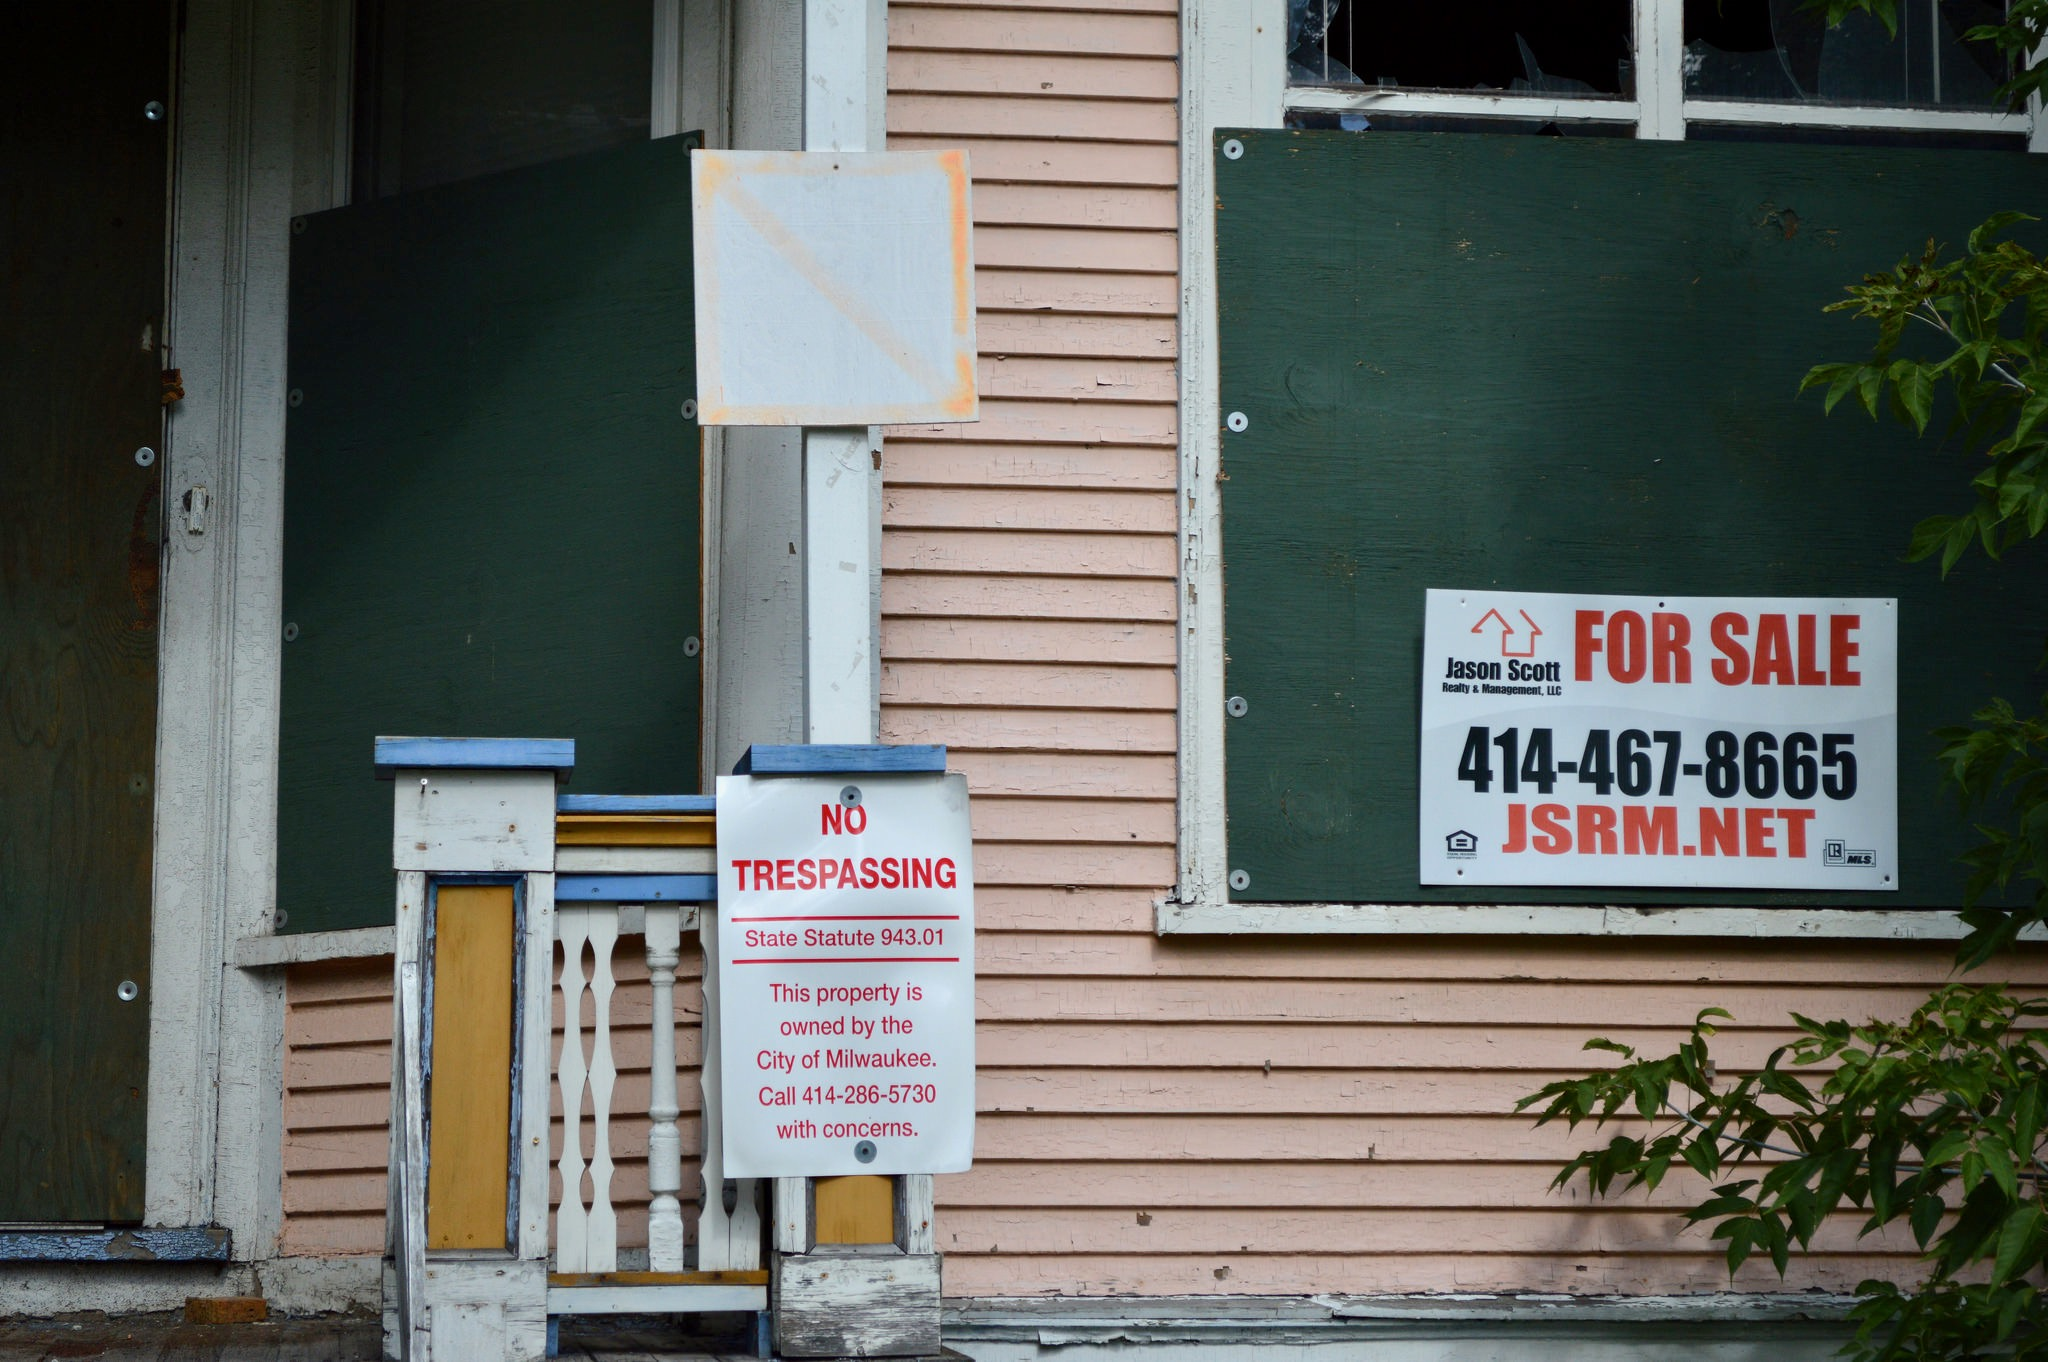 Placard But Mfd Defends Signs Warning Firefighters Of Hazards In Vacant